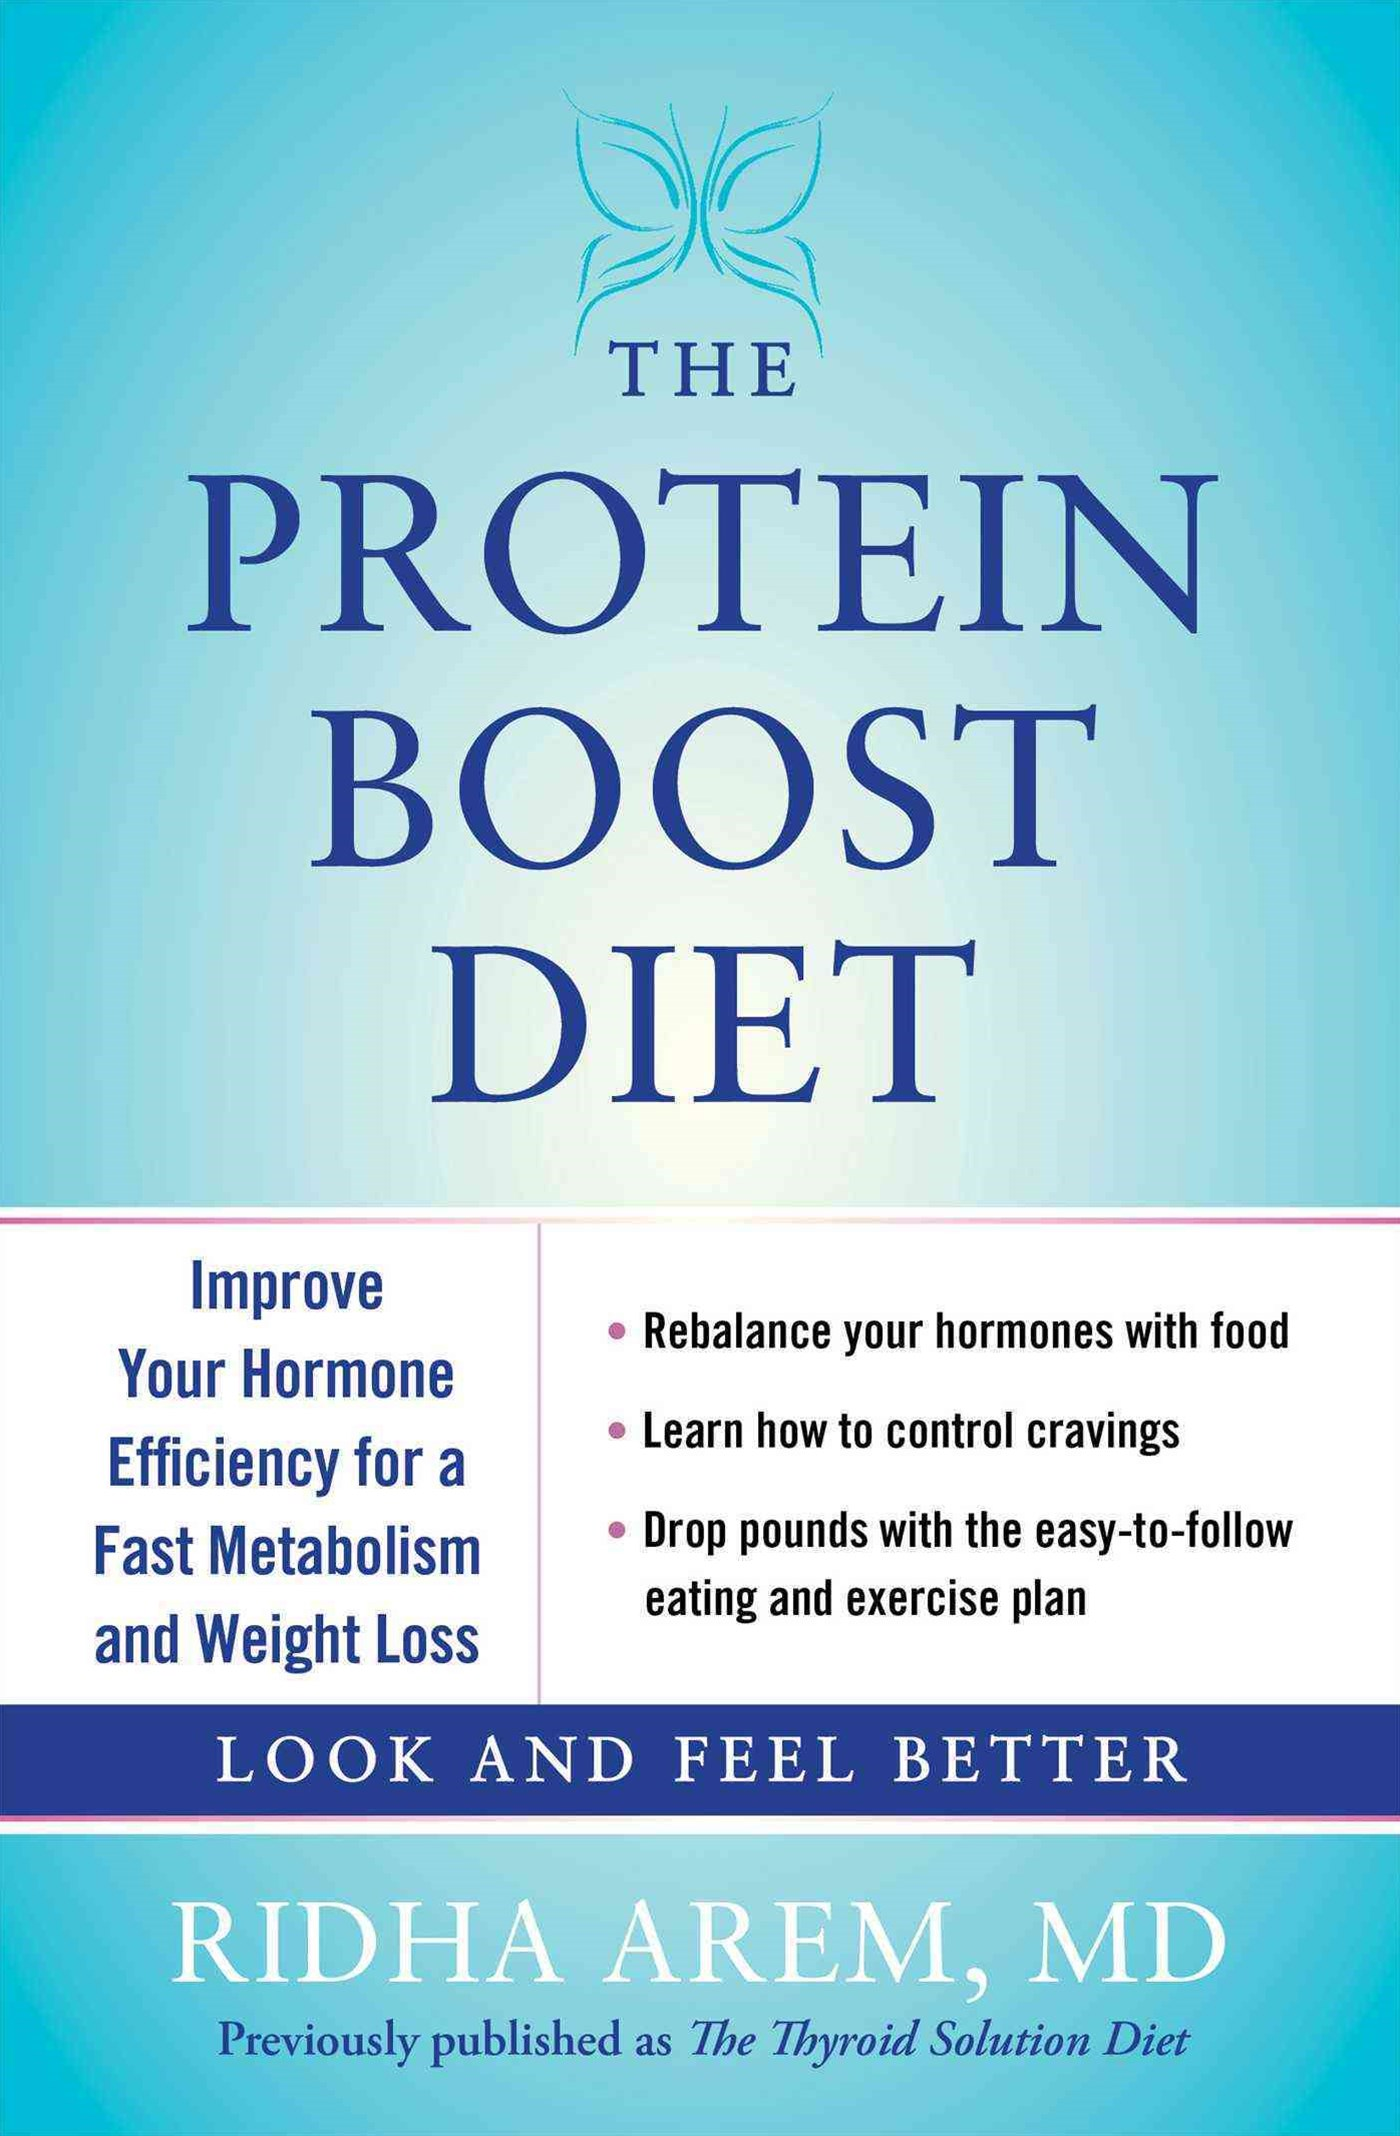 Protein Boost Diet Improve Your Hormone Efficiency for a Fast Metabolism